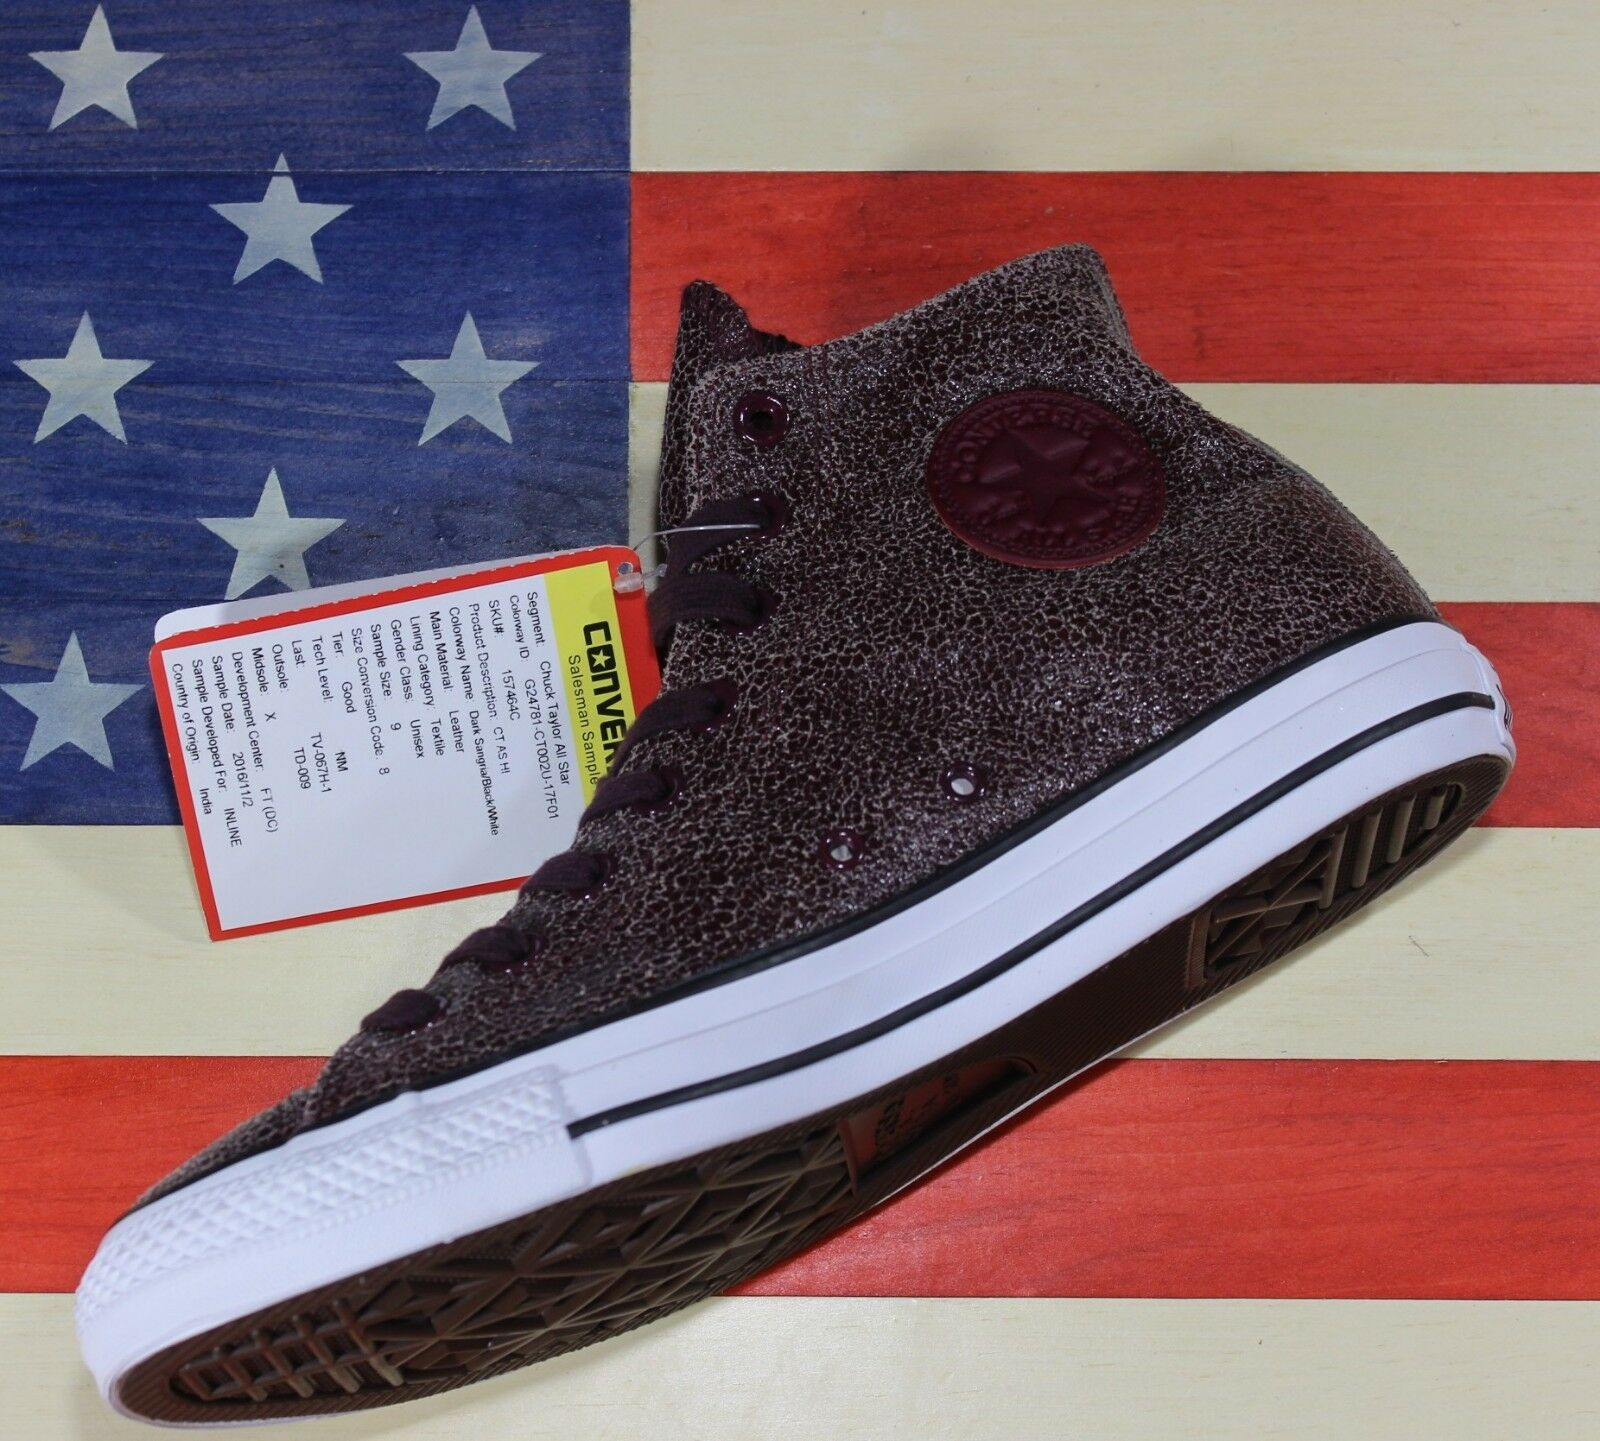 CONVERSE UNRELEASED SAMPLE Cracked Chuck Taylor ALL-STAR HI Cracked SAMPLE Sangria vtg 157464C 44f02f